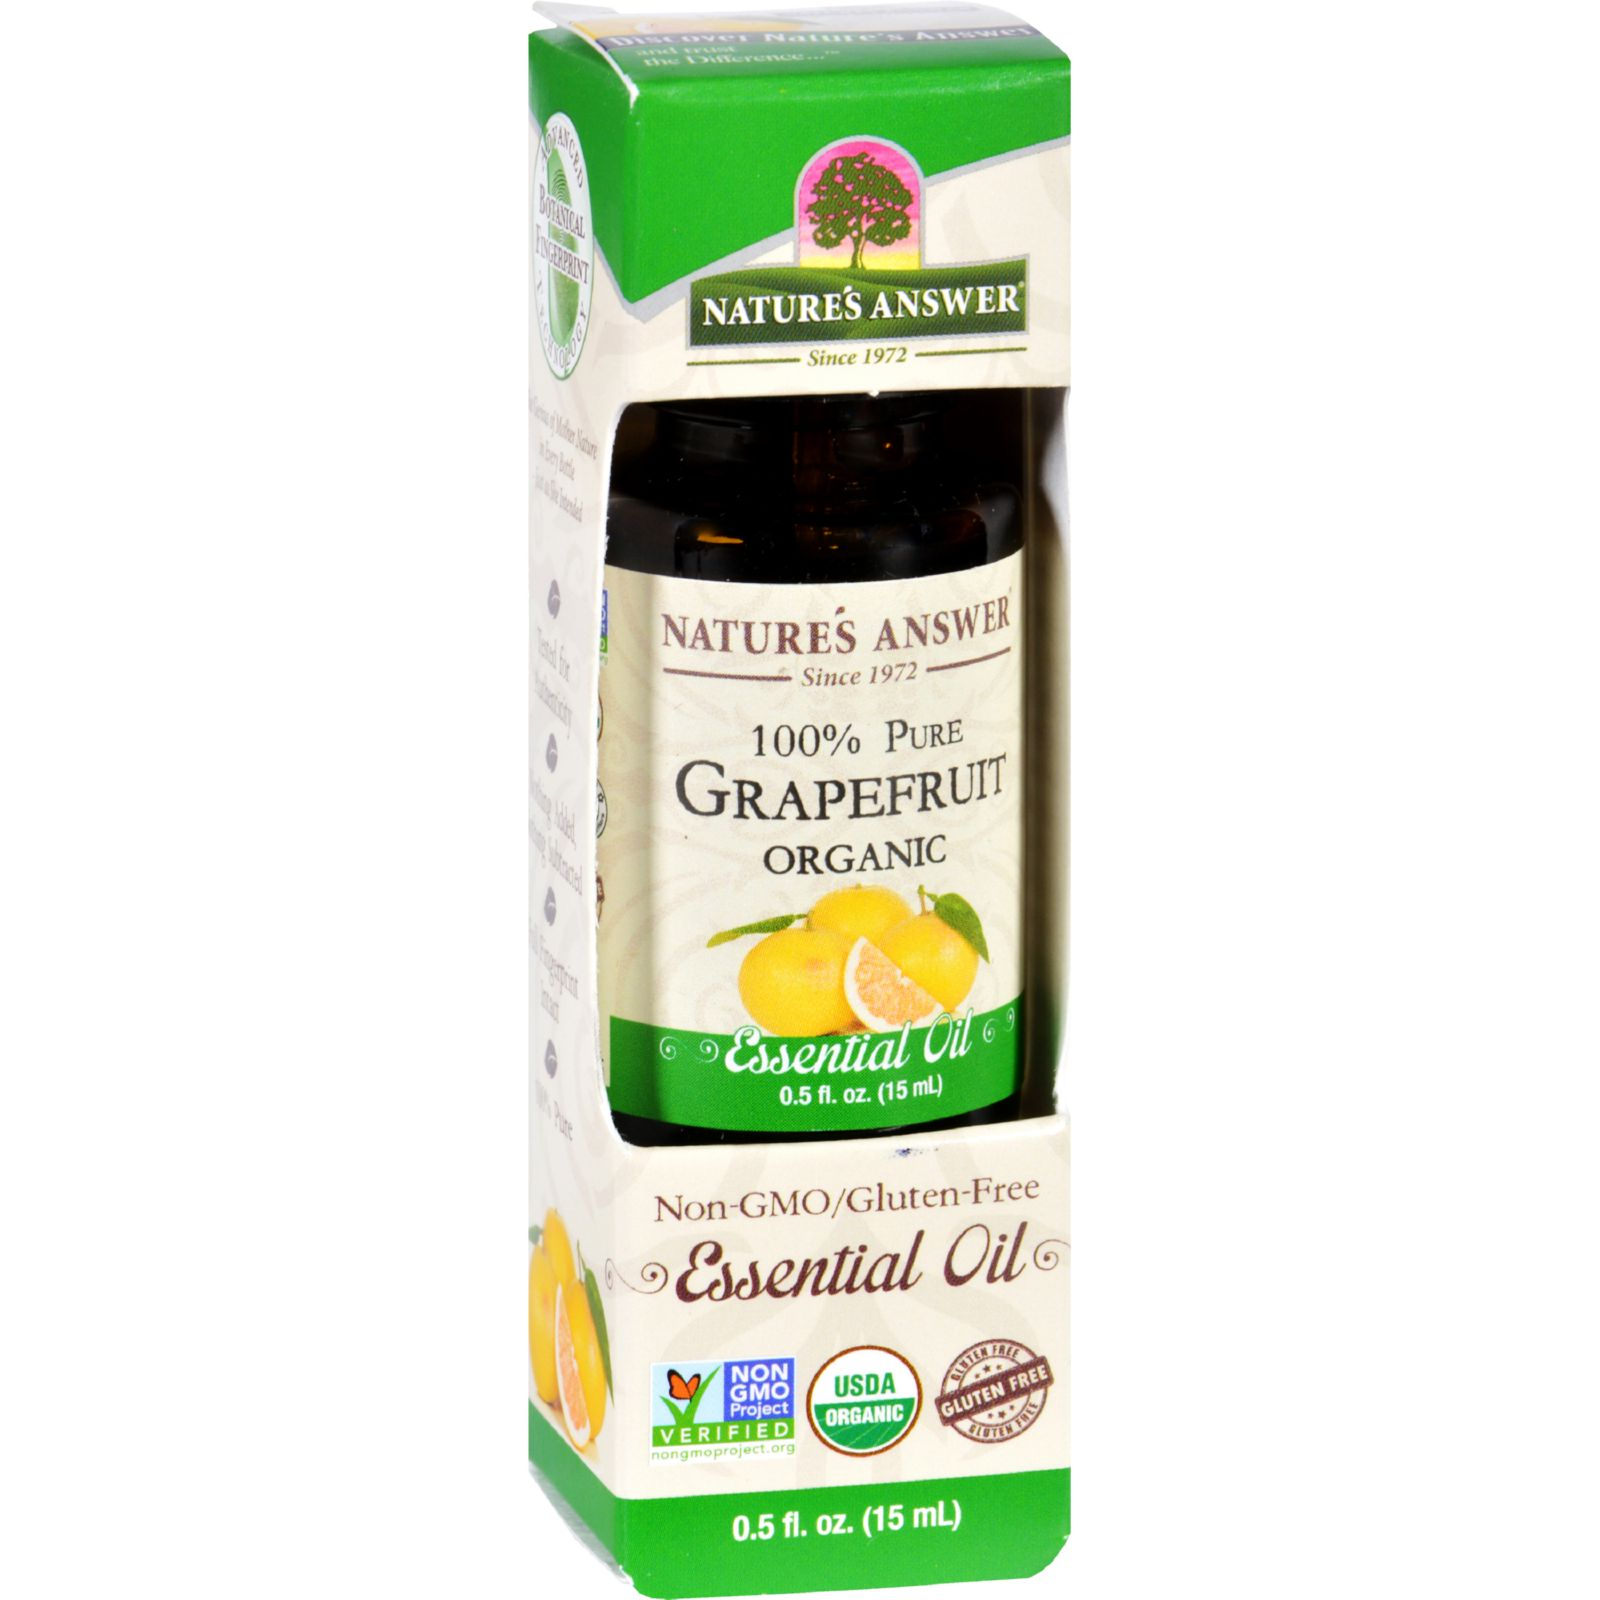 Natures Answer Essential Oil  Organic  Grapefruit  .5 oz